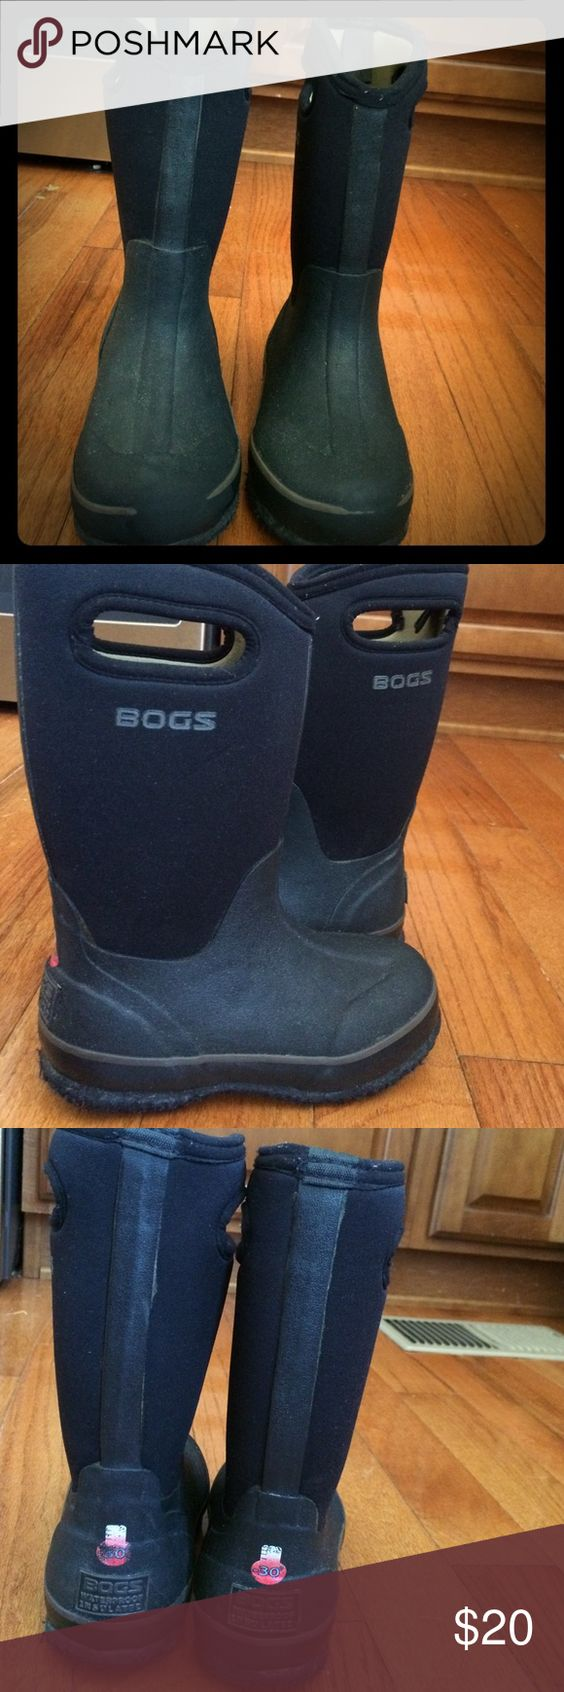 Bogs winter boots Black youth size 13 winter boots.  Great condition.  No stains or rips.  Perfect for winter Bogs Shoes Rain & Snow Boots